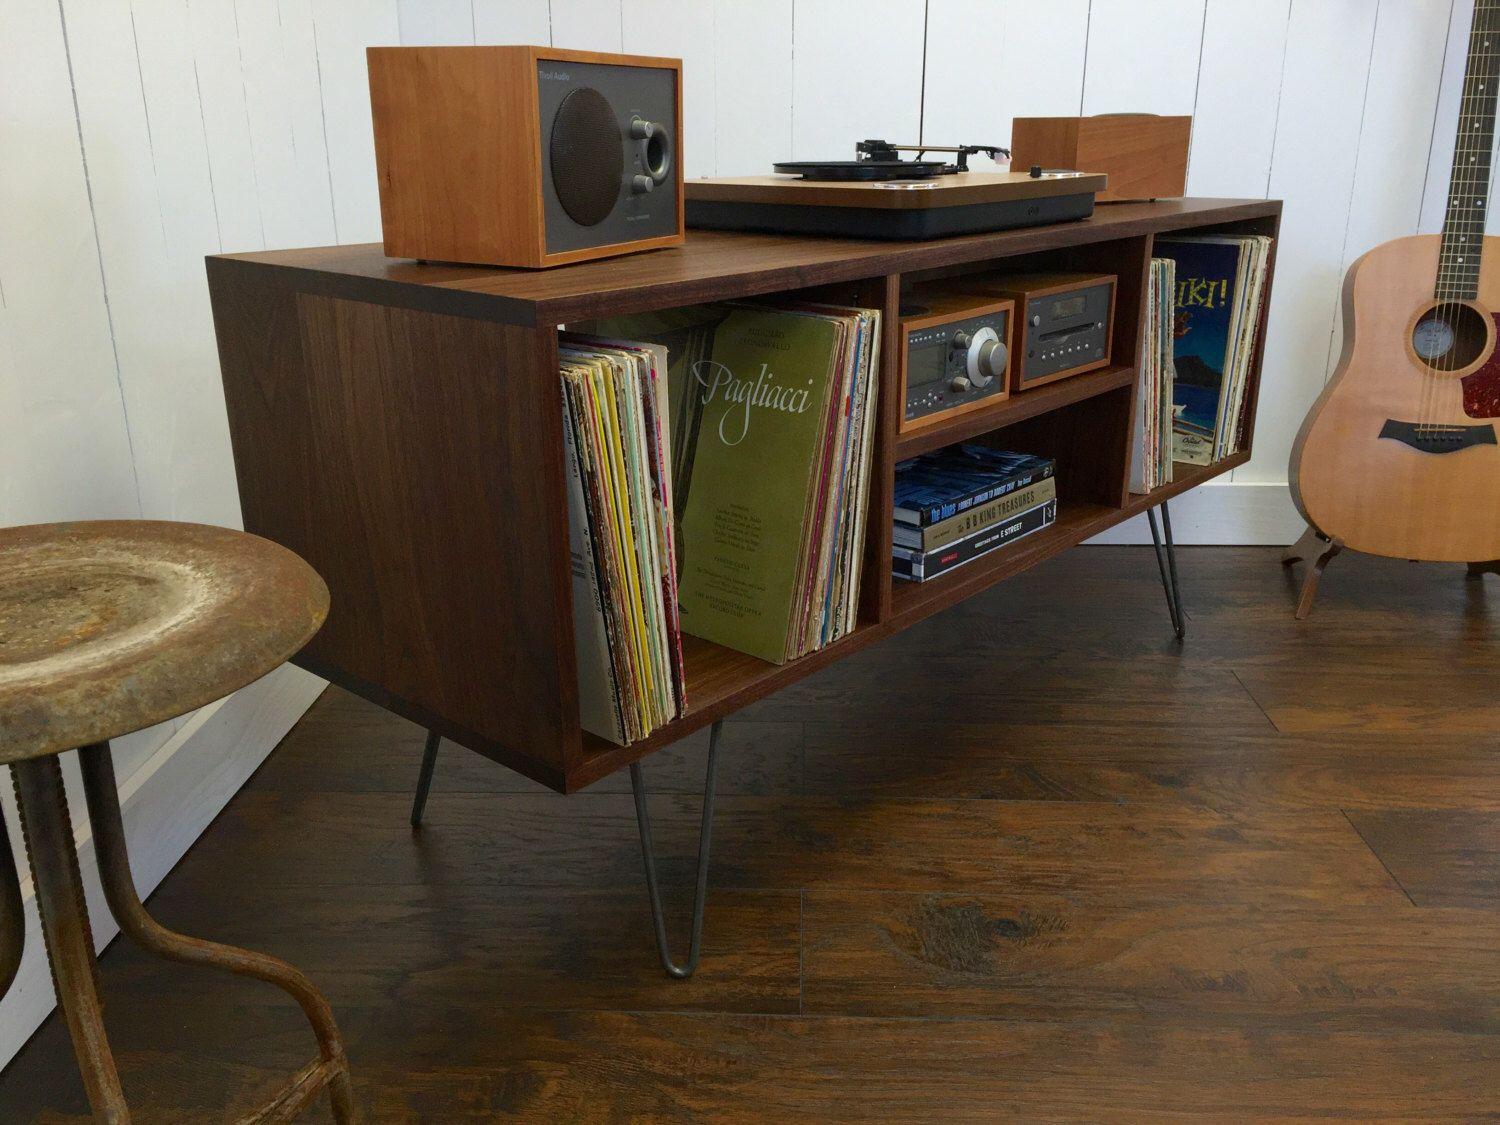 New Mid Century Modern Record Player Console, Stereo Cabinet With LP Album  Storage Featuring Black Walnut With Steel Hairpin Legs. By Scottcassin On  Etsy ...